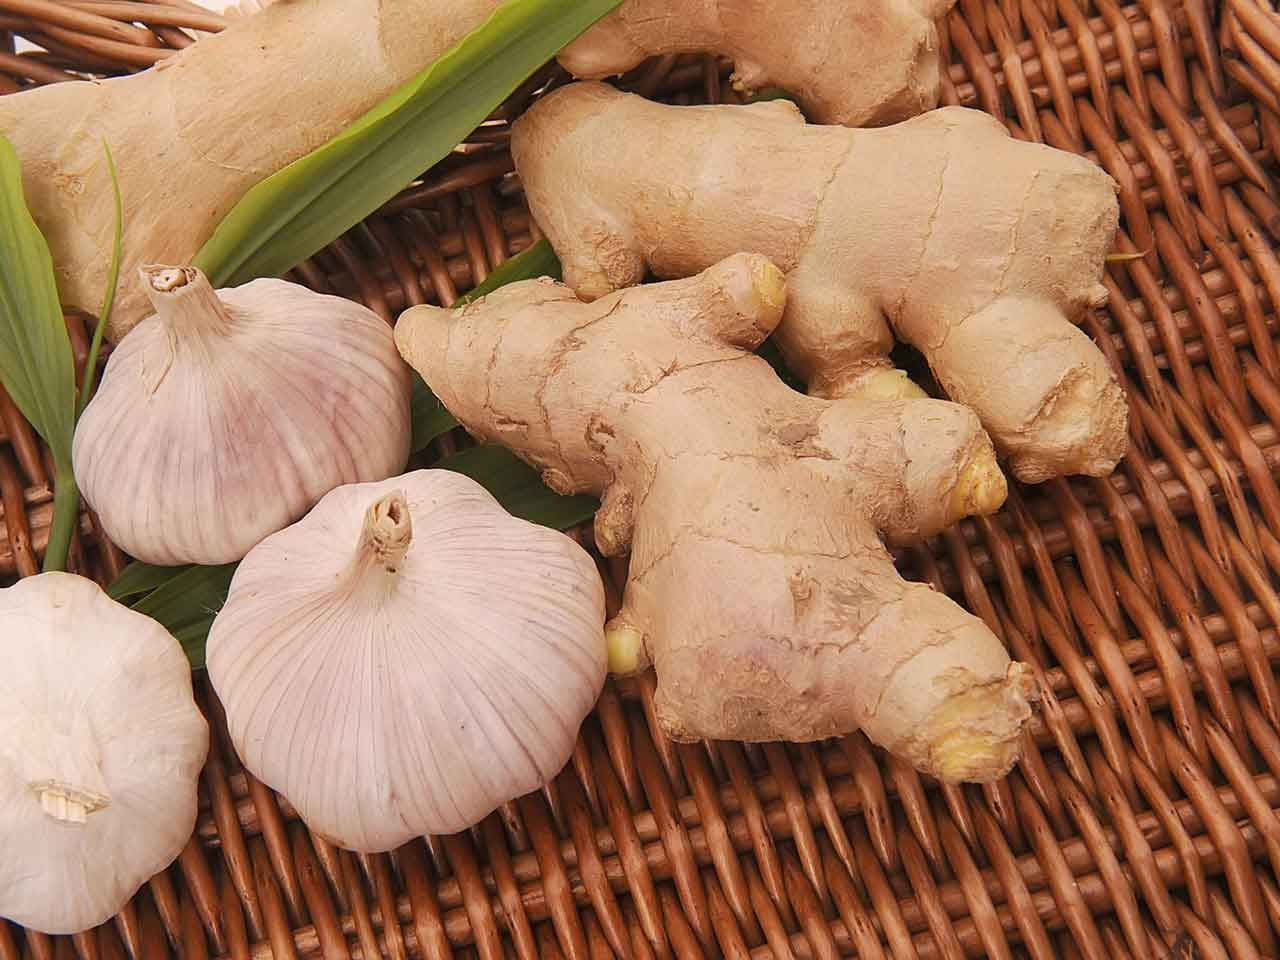 Close up of garlic bulbs and ginger